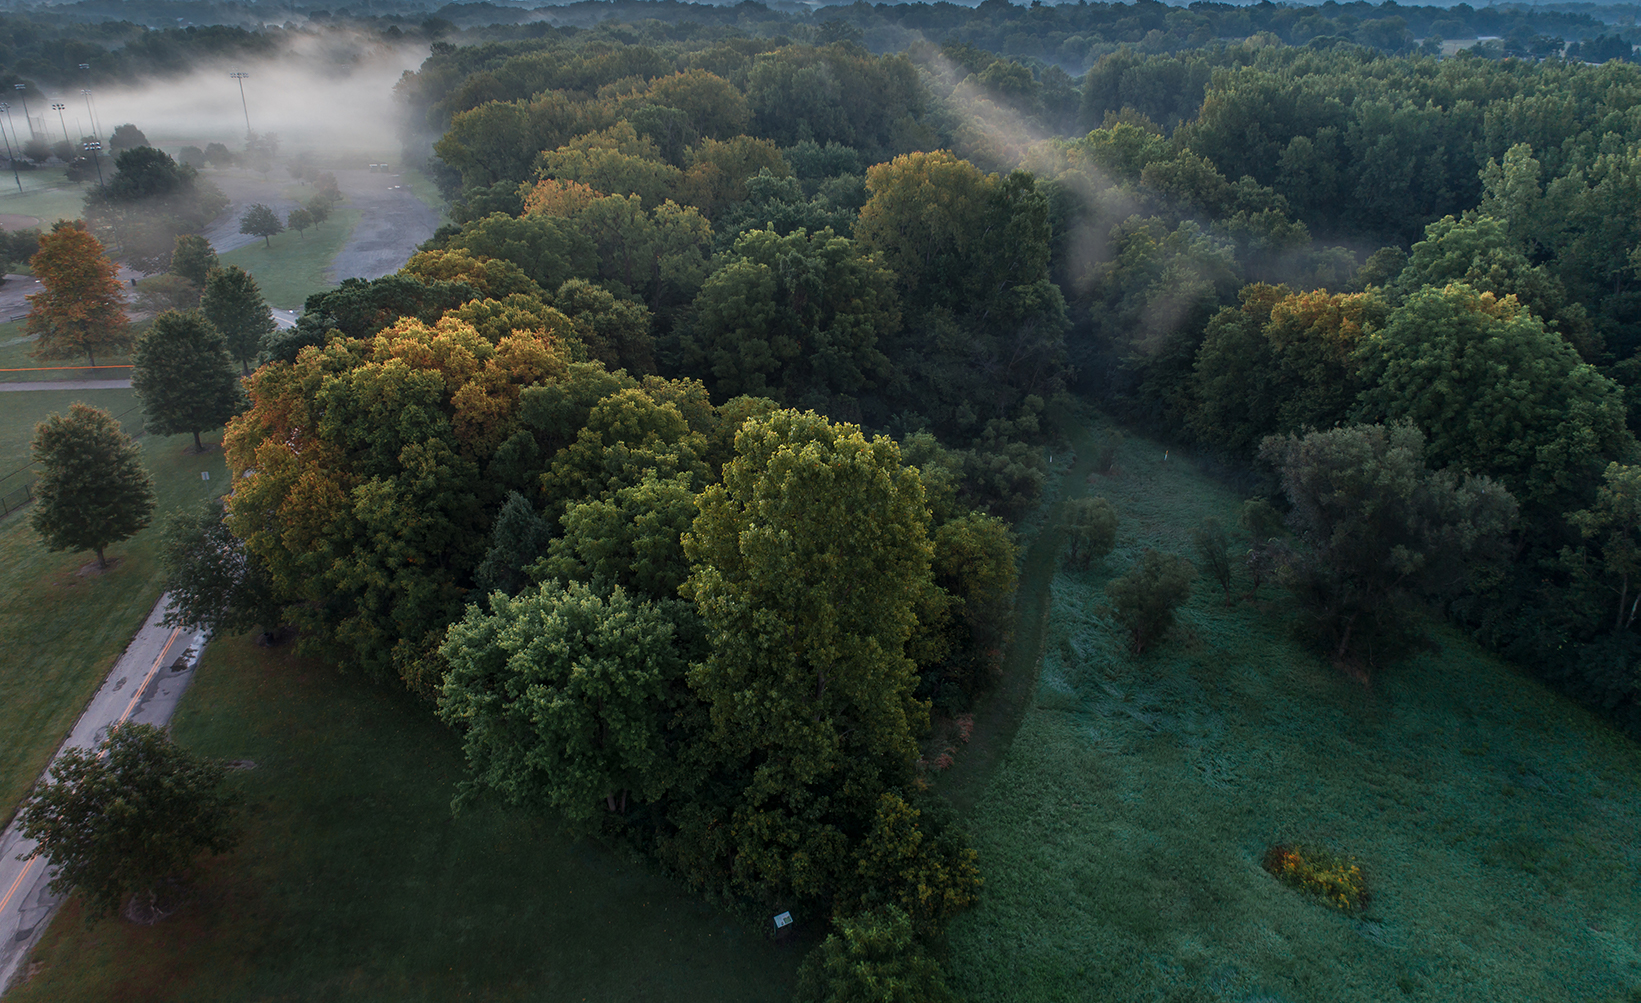 Mist and the beginning of autumn with yellows starting to show